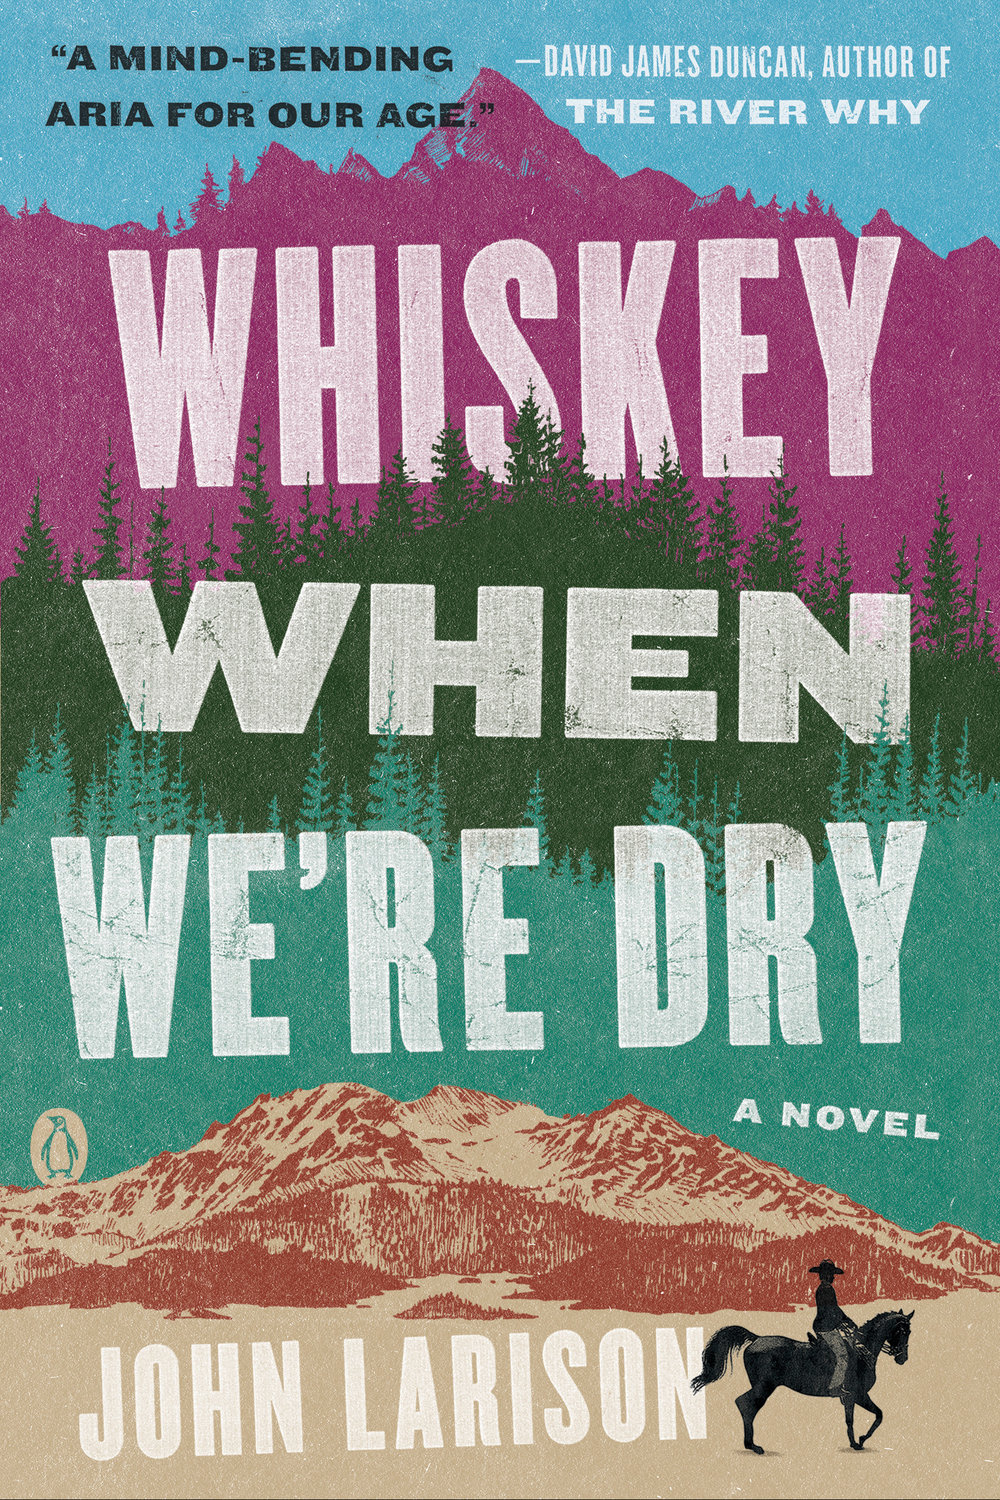 - Indie Next Pick for Sept 2018Los Angeles Times BestsellerCurrently a finalist for the Oregon Book AwardNamed a Best Book by Entertainment Weekly, O Magazine, Goodreads, Southern Living, Outside Magazine, Parade, Fodor's Travel, Sioux City Journal, Read it Forward, Medium.com, and others.Featured on NPR's All Things Considered.Selected a Best Book of 2018 by Powell'sCurrently in development for a feature film.Paperback Release: July 2 2019To order signed or personalized copies, contact Grass Roots Books and Music, at (541) 754-7668 or email: groots@peak.org